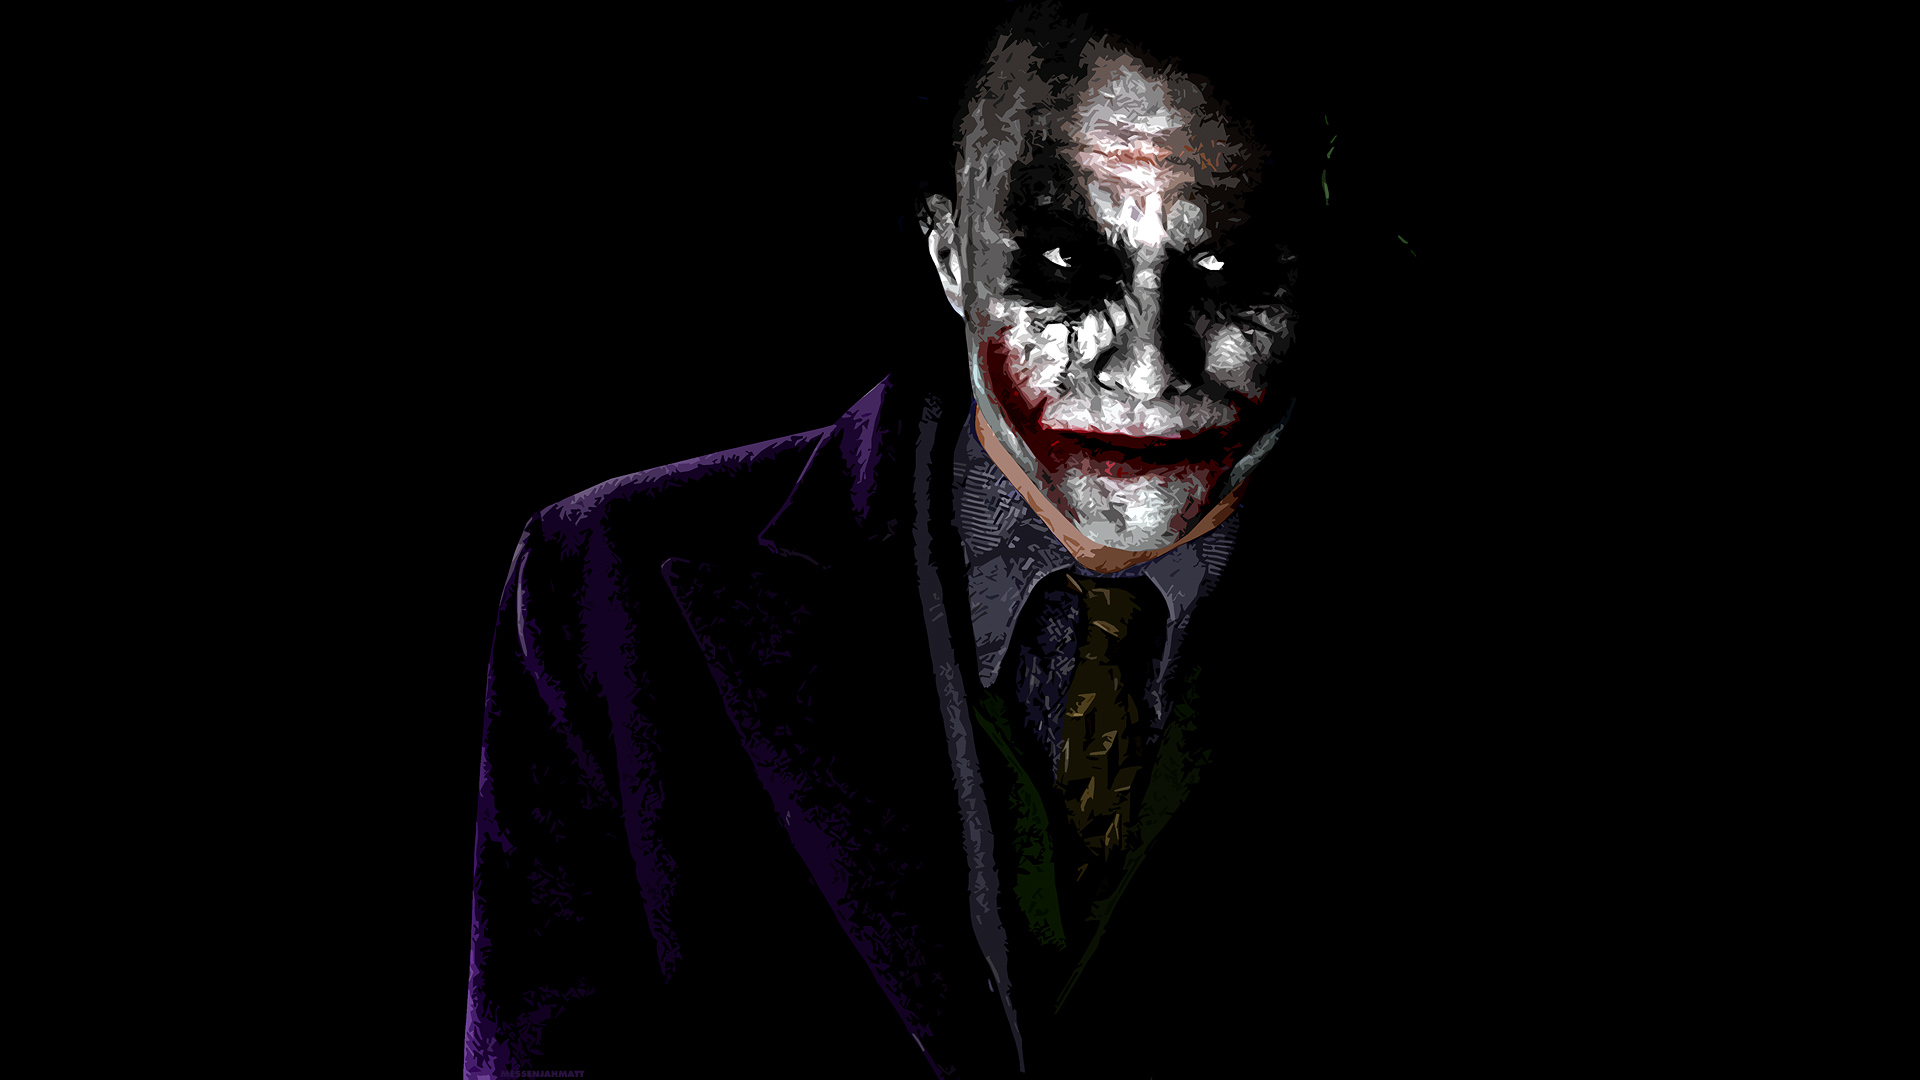 the joker wallpapers pictures images